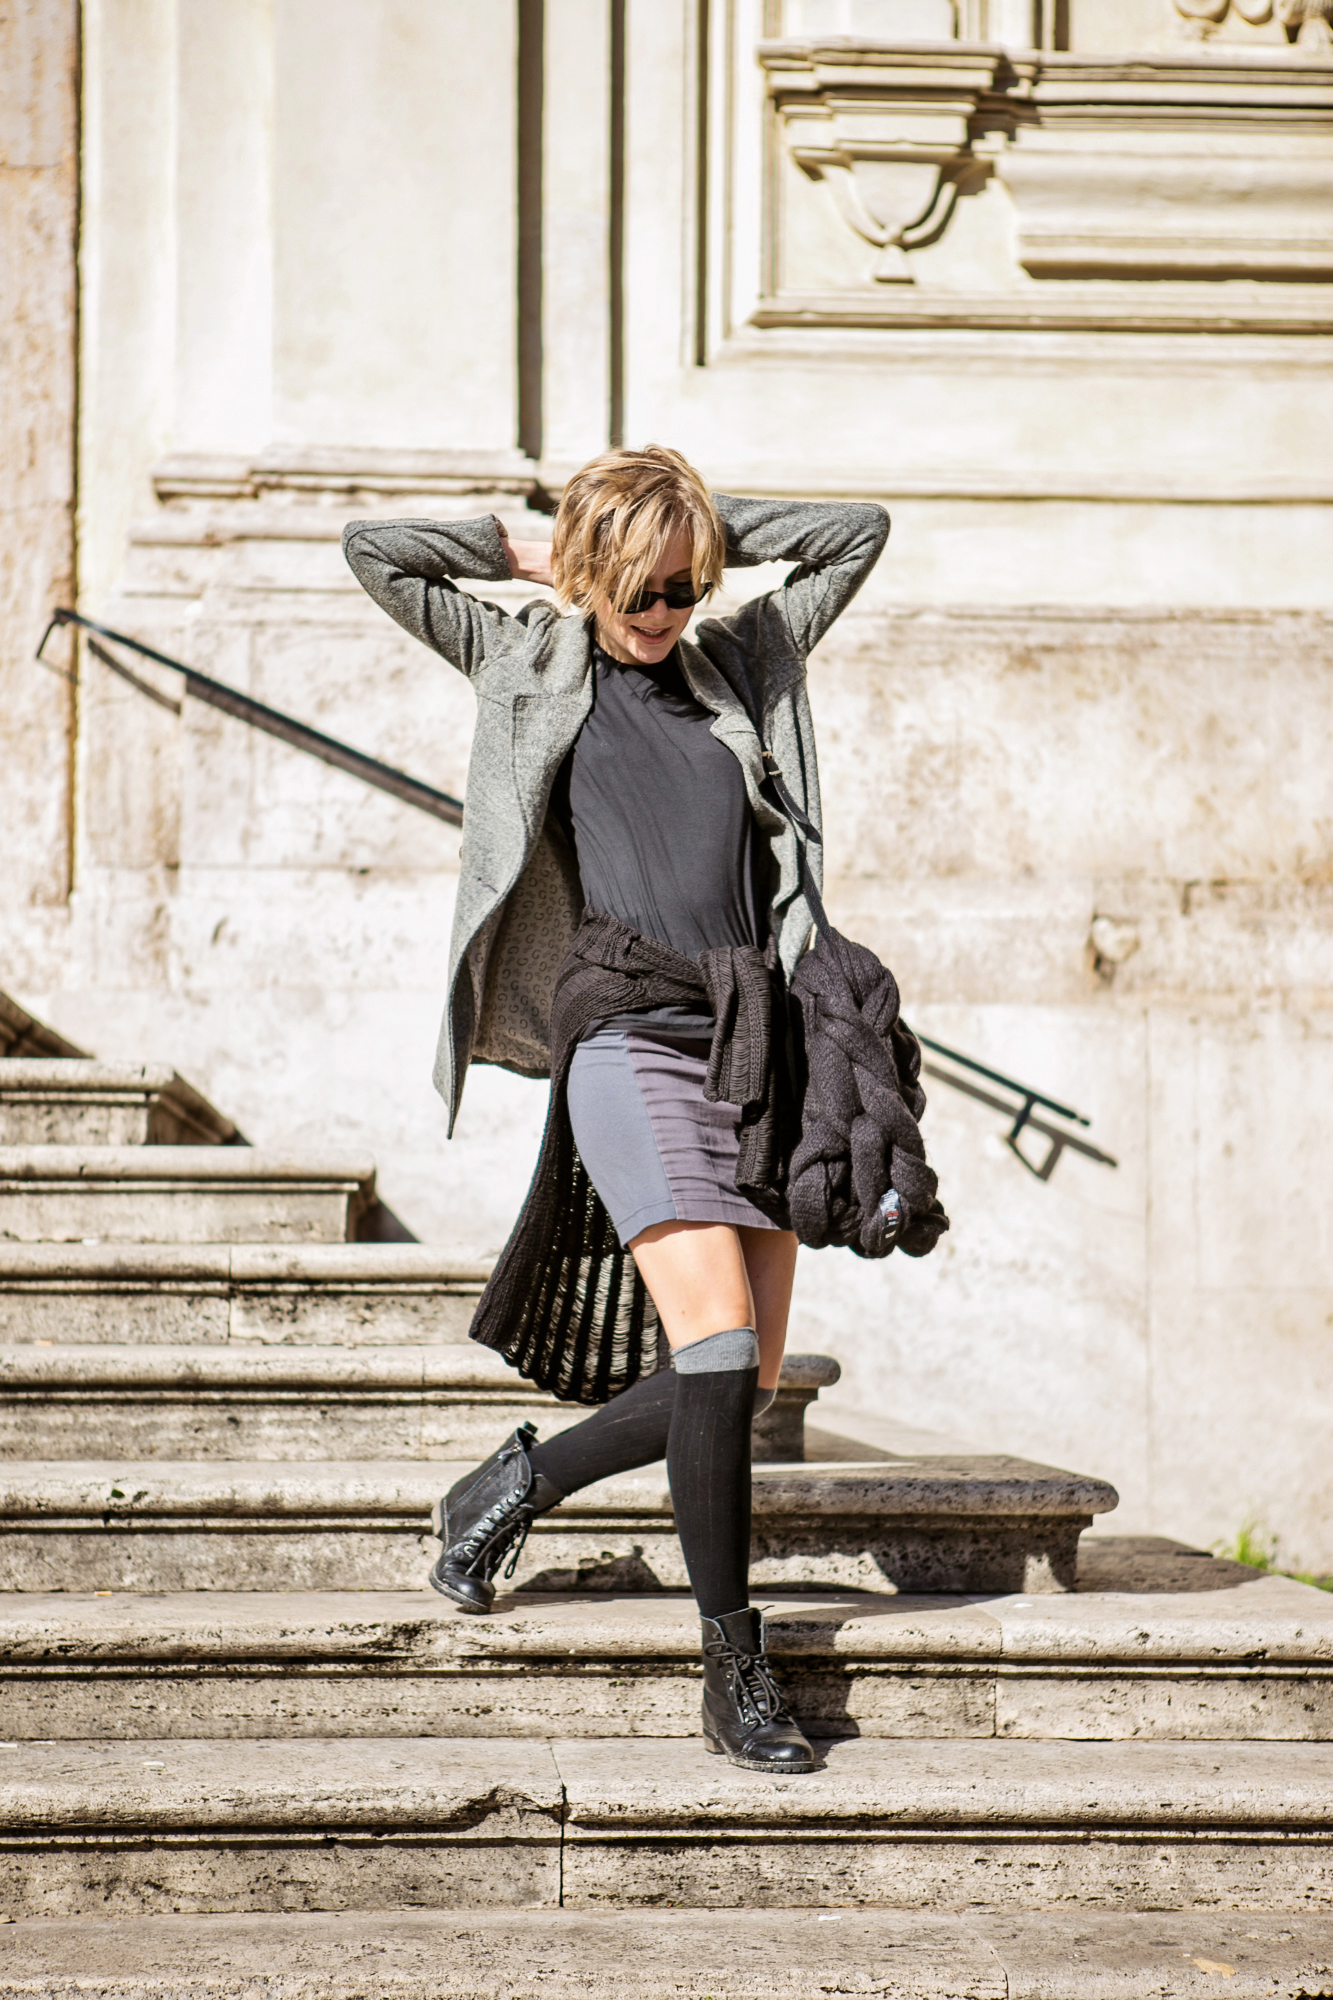 darya kamalova from thecablook com during the trip to Rome walking in the center of the city and wearing chicwish grey coat and laced up booties with proenza schouler ps11 black leather bag-24